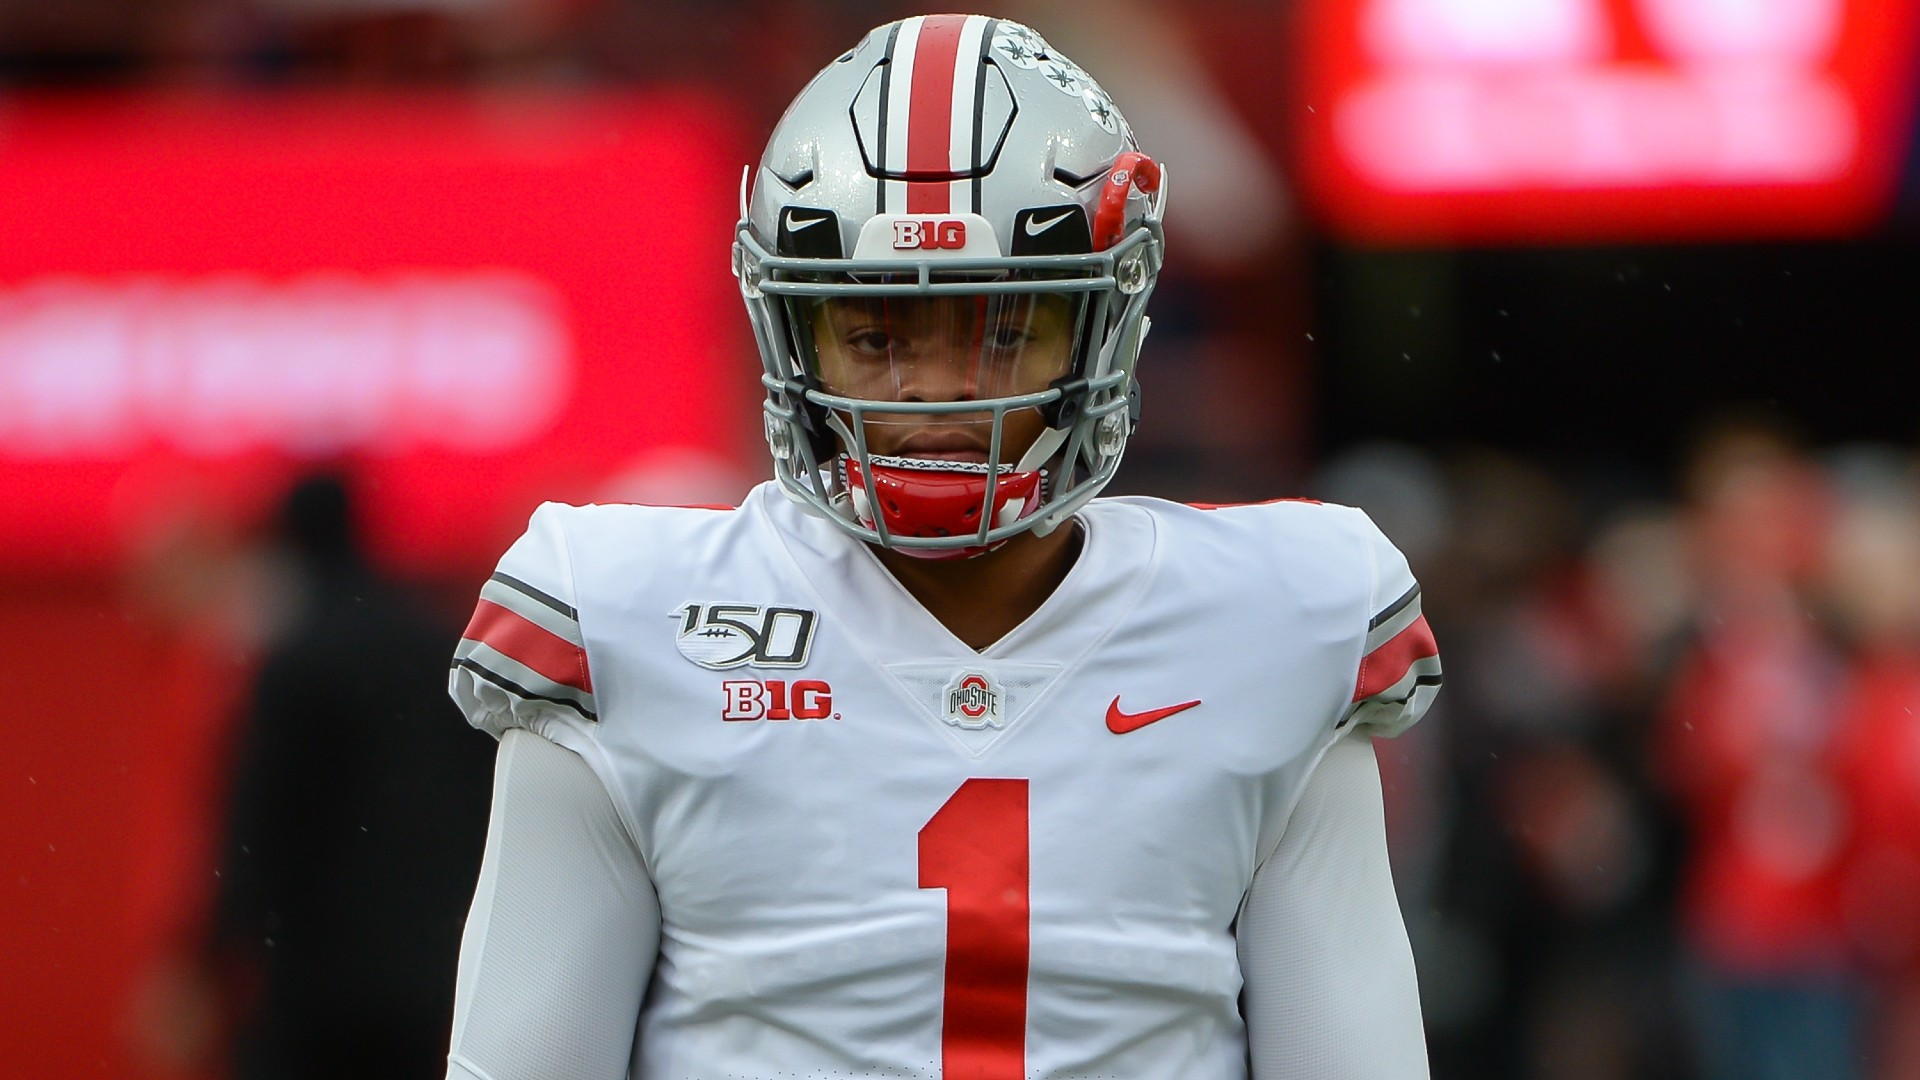 Ohio State vs. Northwestern odds, prediction, betting trends for 2020 Big Ten championship